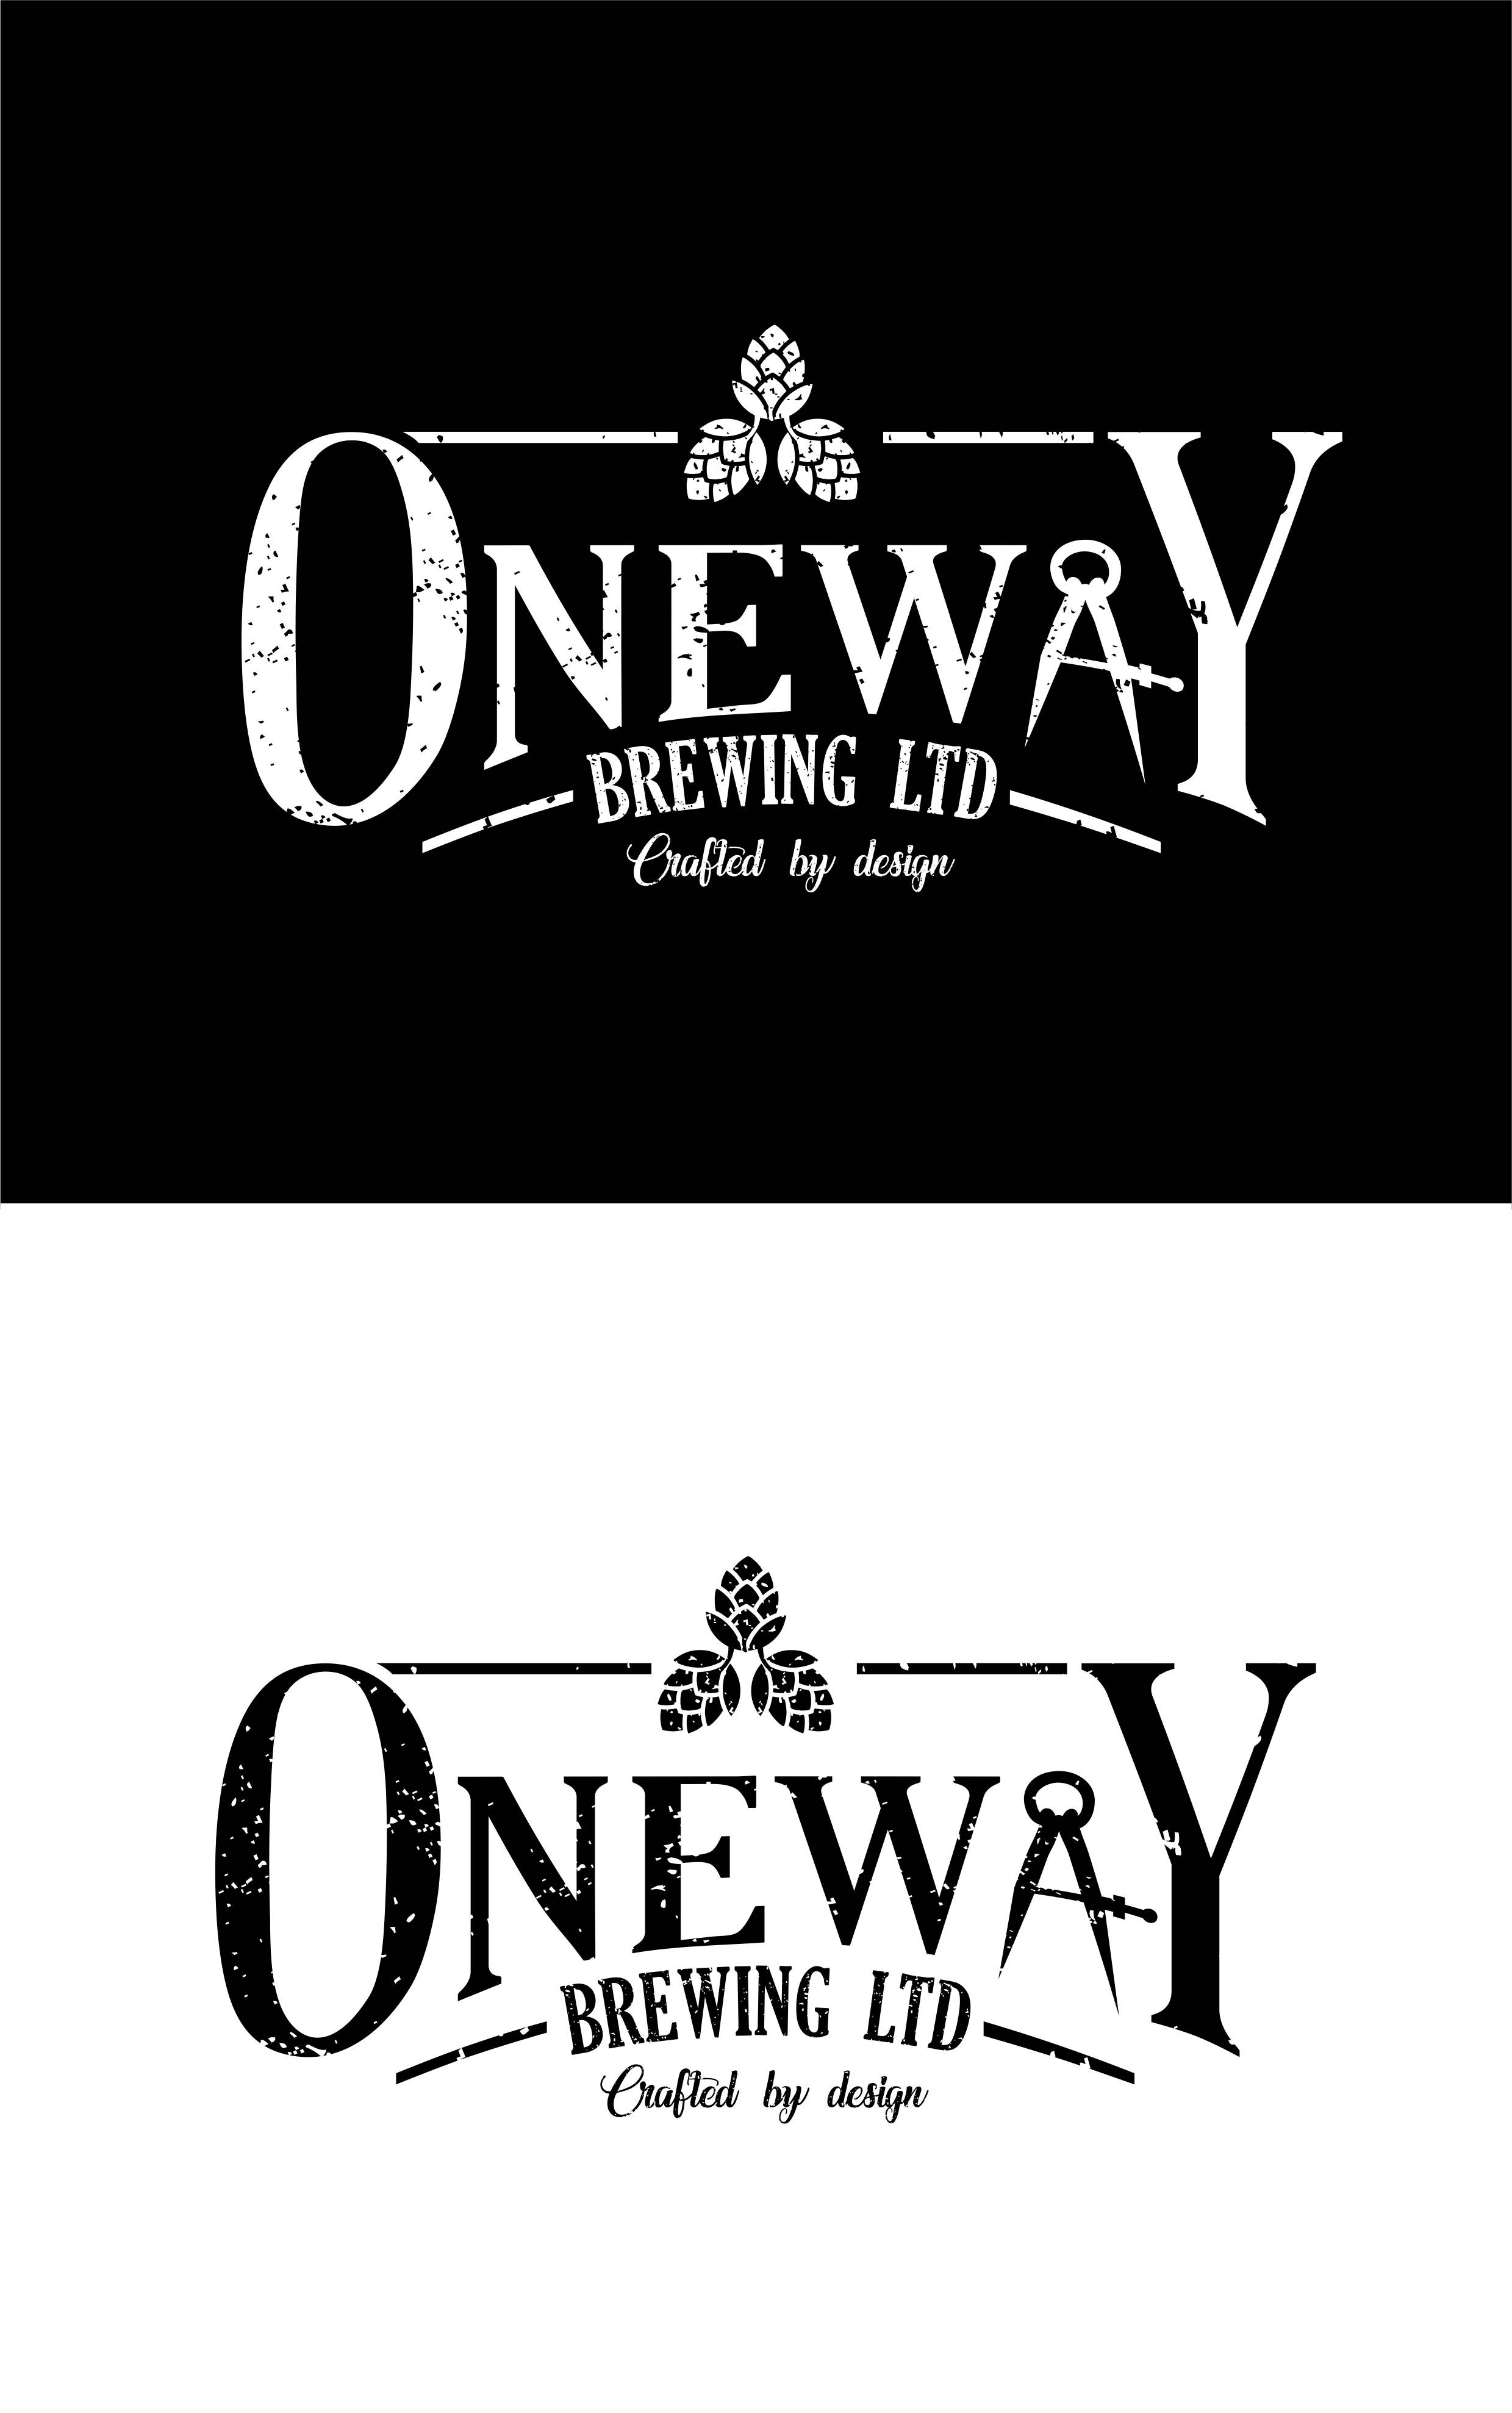 Logo Design by Net Bih - Entry No. 135 in the Logo Design Contest Captivating Logo Design for The Architect Brewing Co..